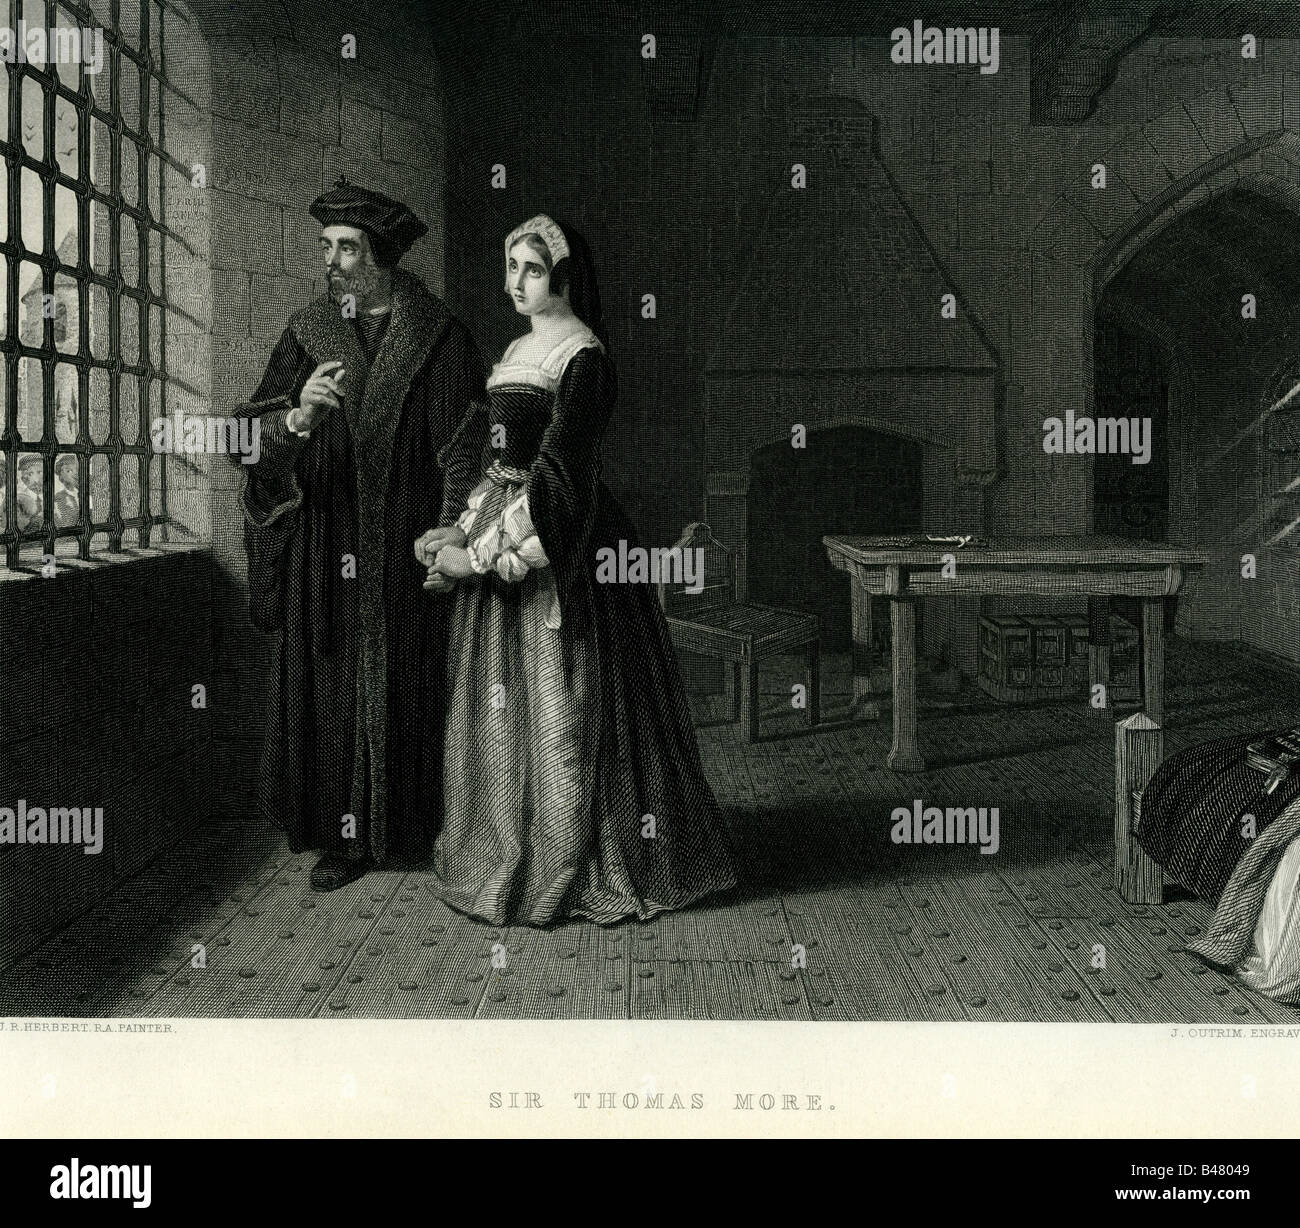 More, Thomas, 7.2. 1478 - 6.7.1535, English philosopher and politician, in his cell in the Tower of London, engraving - Stock Image